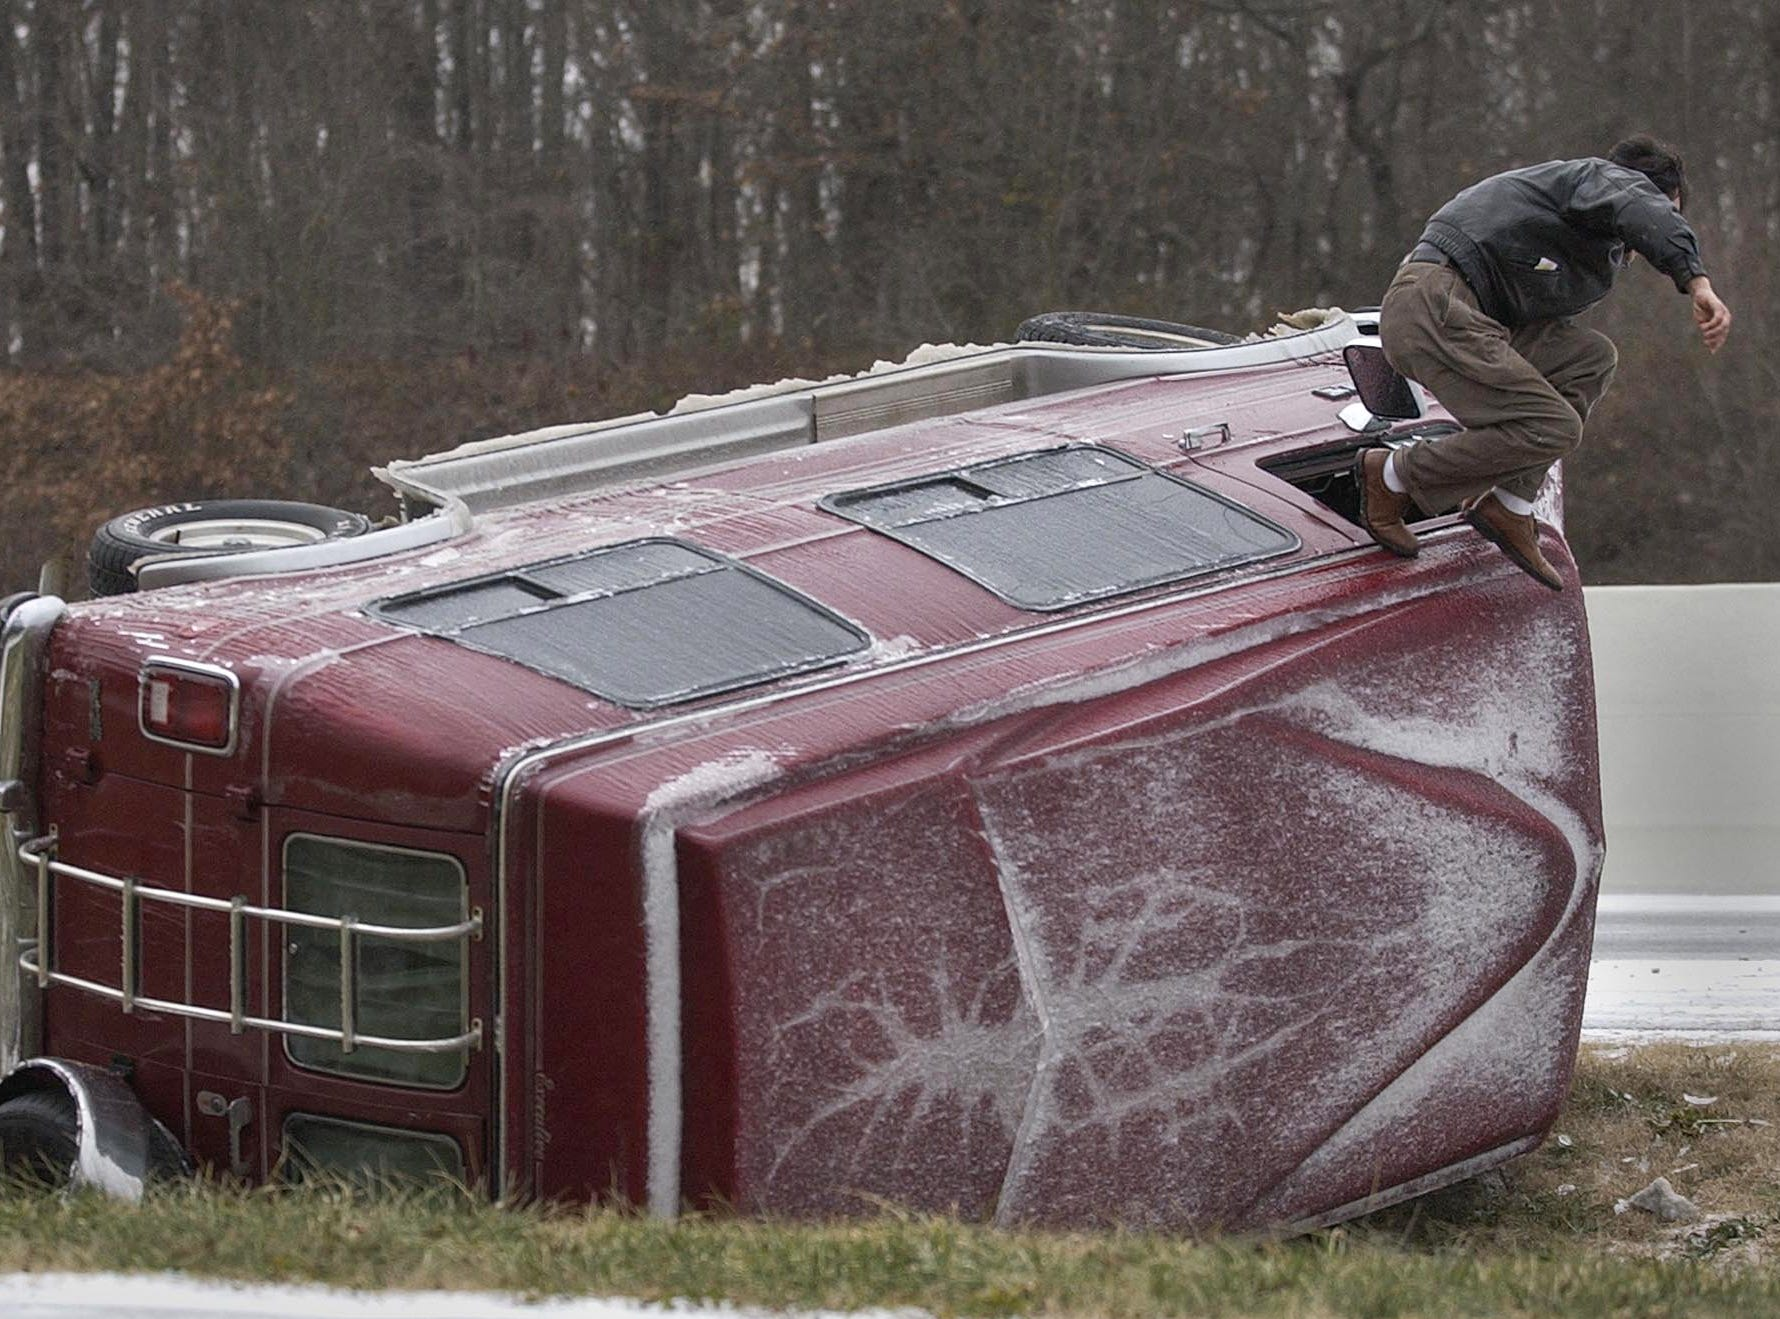 The driver of a van that overturned on I-85 near Hwy 8 in Anderson County jumps from the window Saturday January 29, 2005. The driver, who who is from Atlanta and would not ID himself, was not injured in the accident.